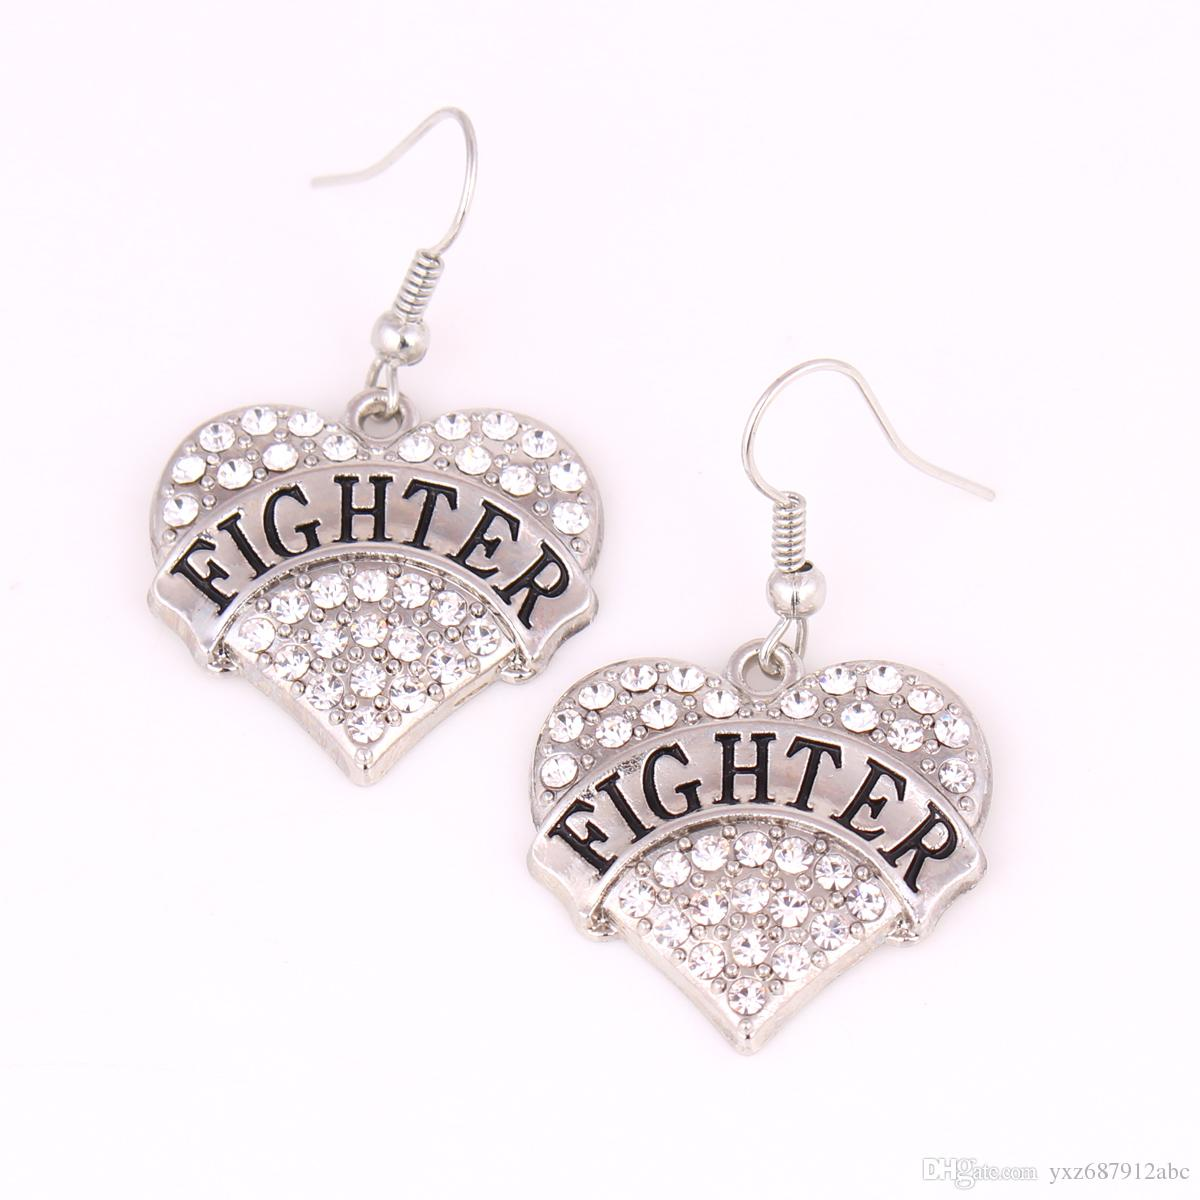 Letras FIGHTER Heart Love Pendientes tachonados con cristales chispeantes Colgante French Hook Earrings Conmemoration Day Fashion Jewelry